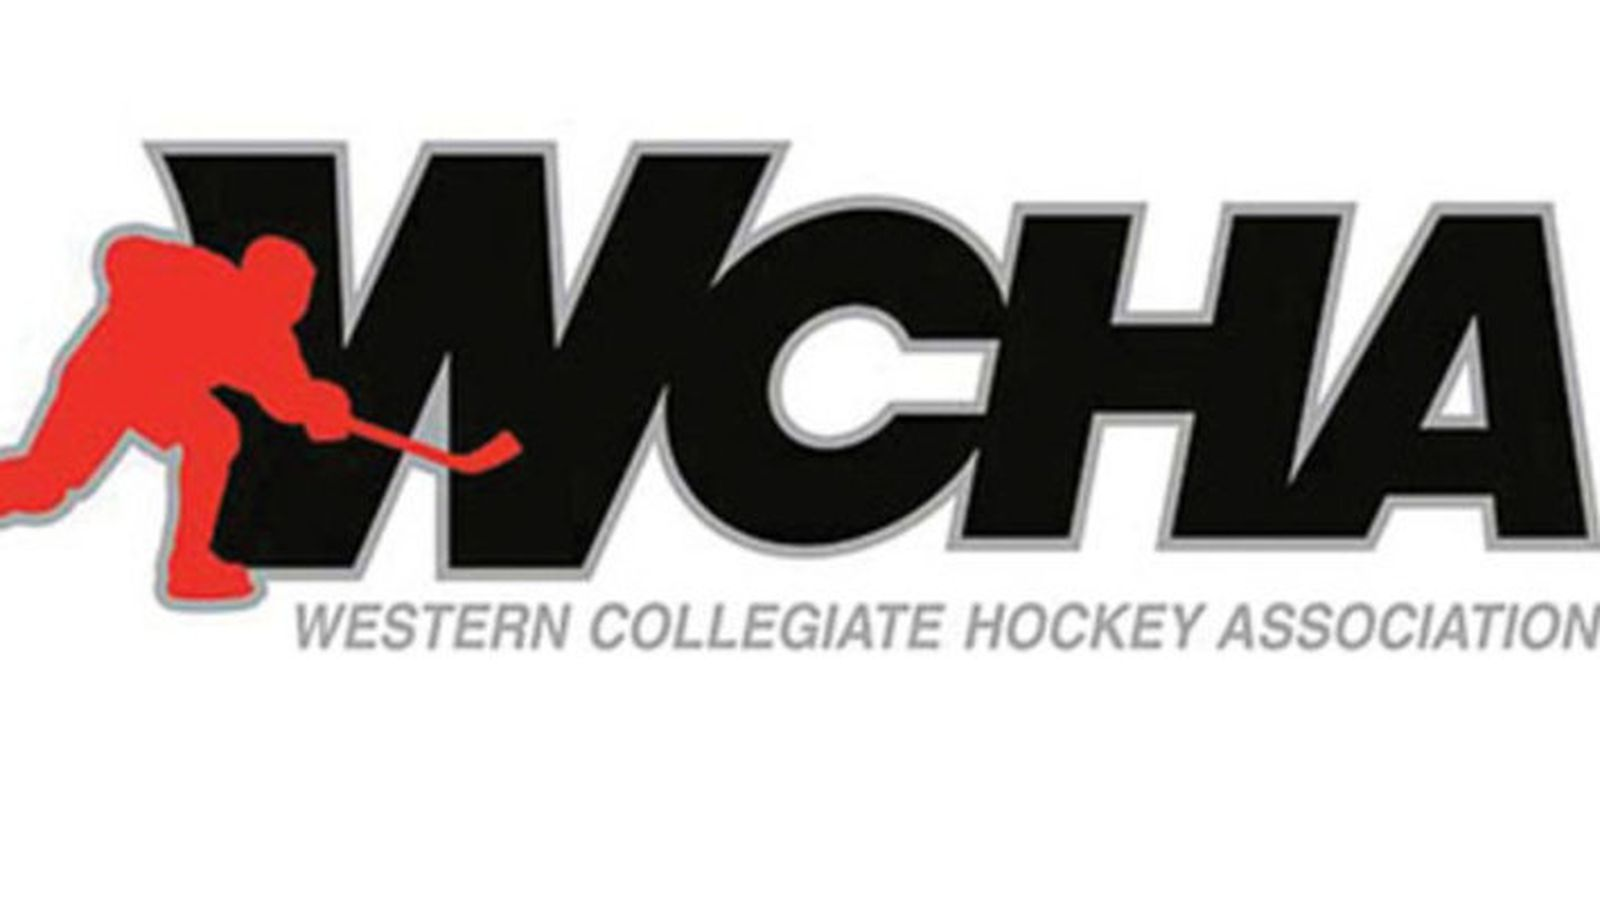 plan announces streaming WCHA  conference WCHATV games for